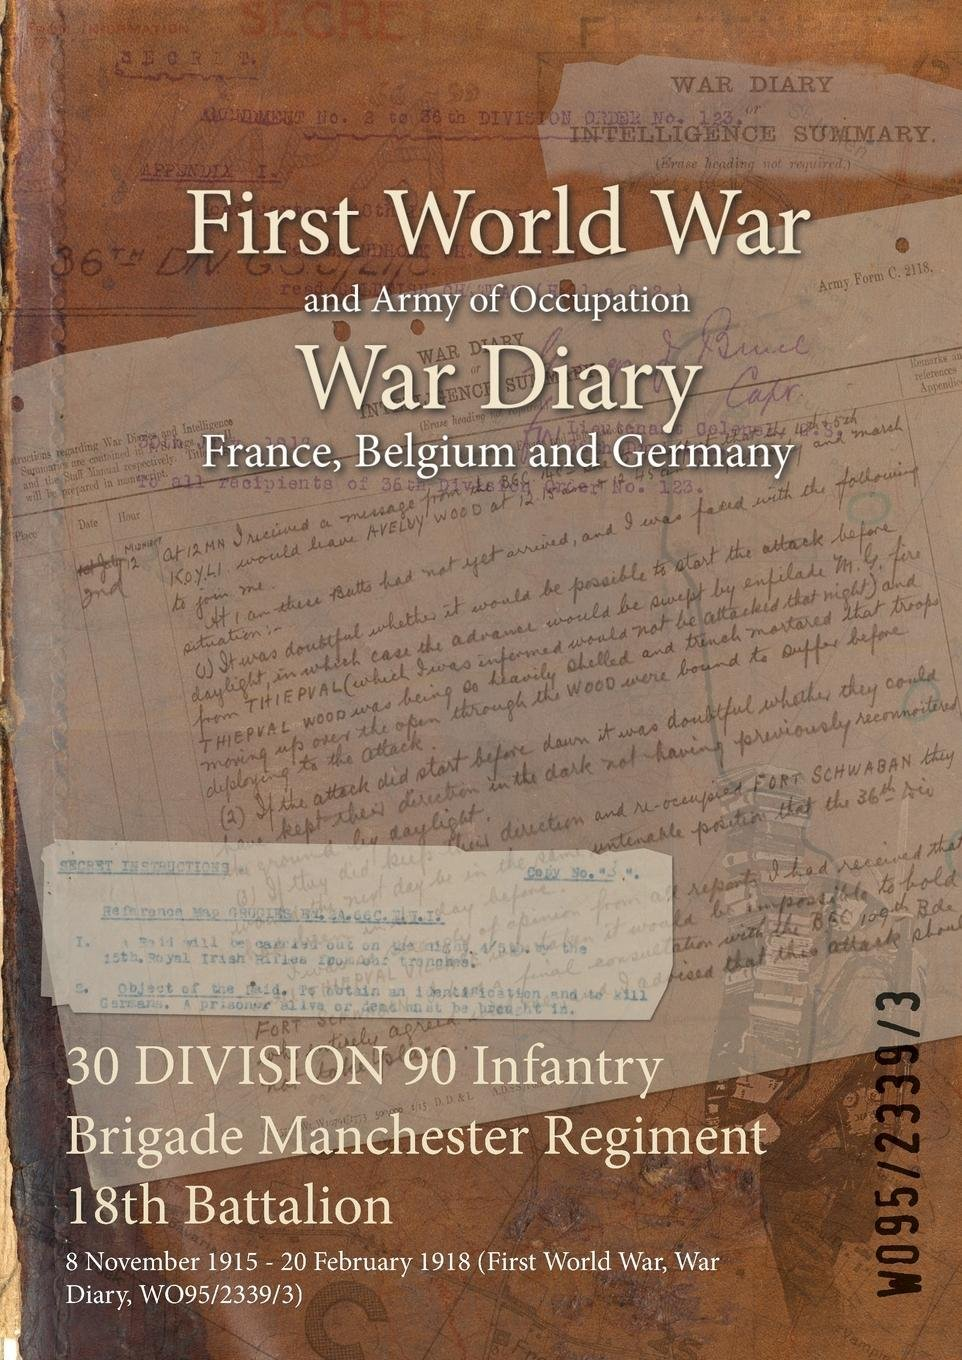 30 Division 90 Infantry Brigade Manchester Regiment 18th Battalion: 8 November 1915 - 20 February 1918 (First World War, War Diary, Wo95/2339/3) PDF